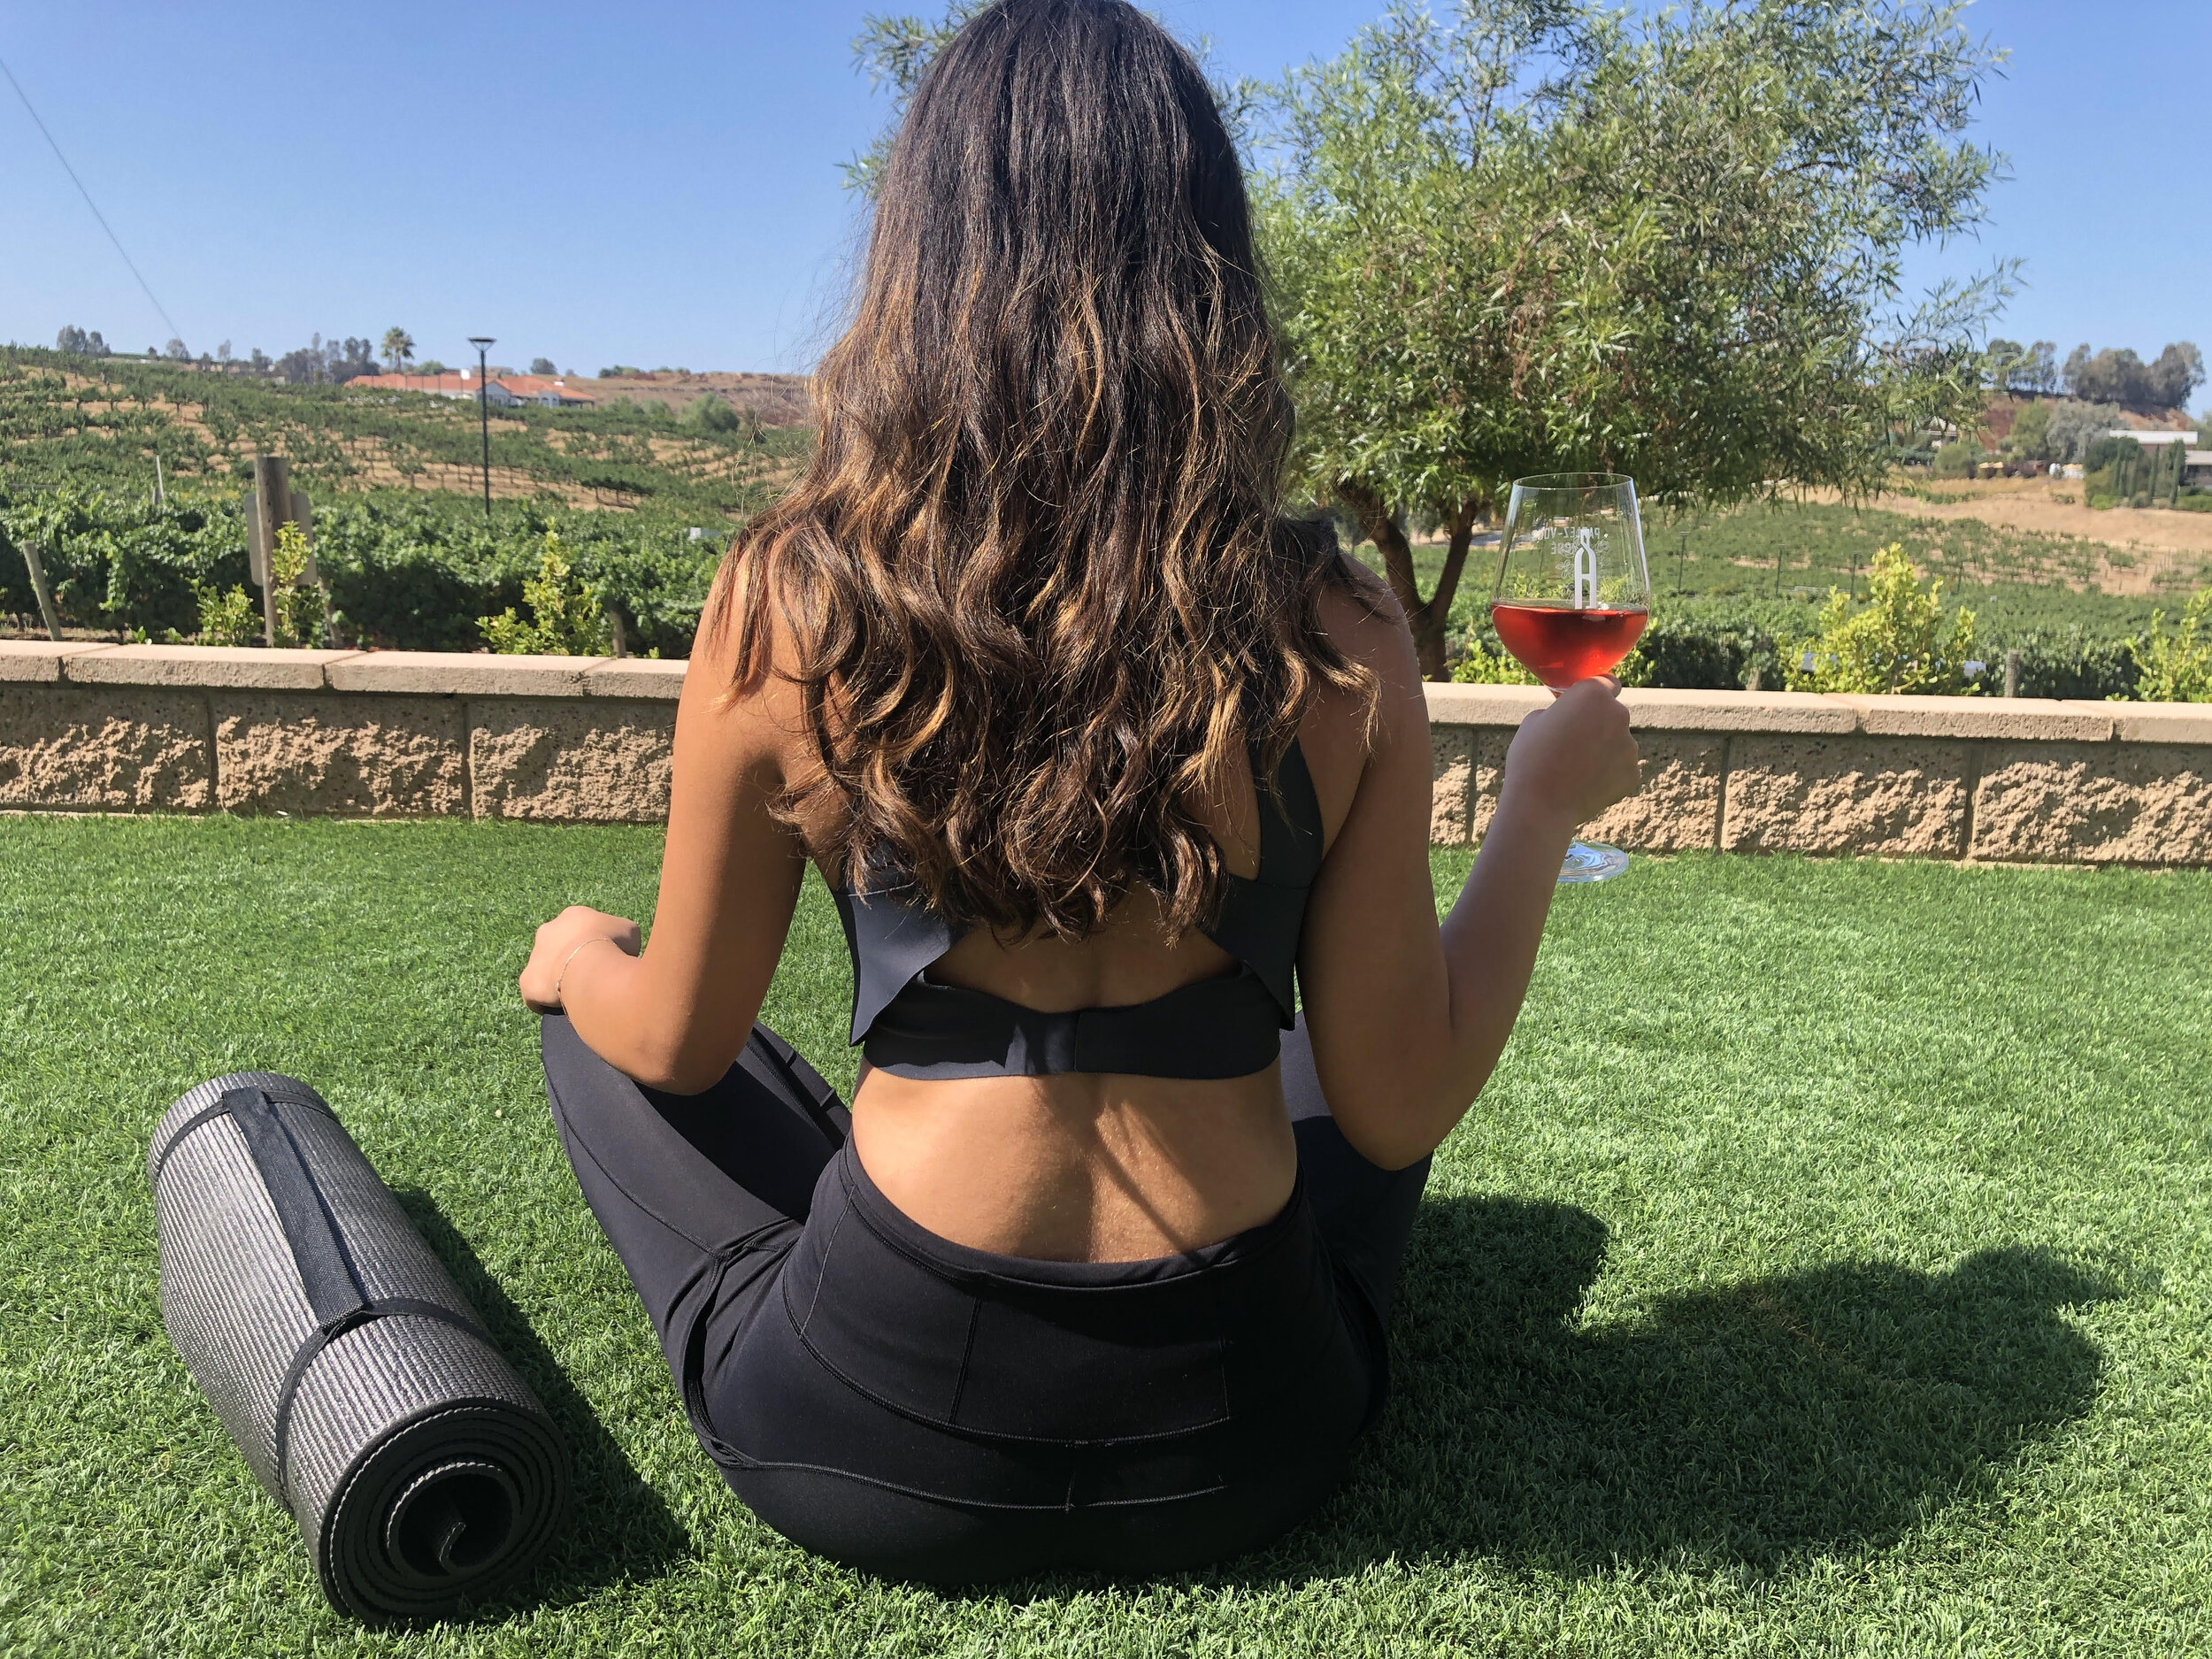 Yoga + Wine Club